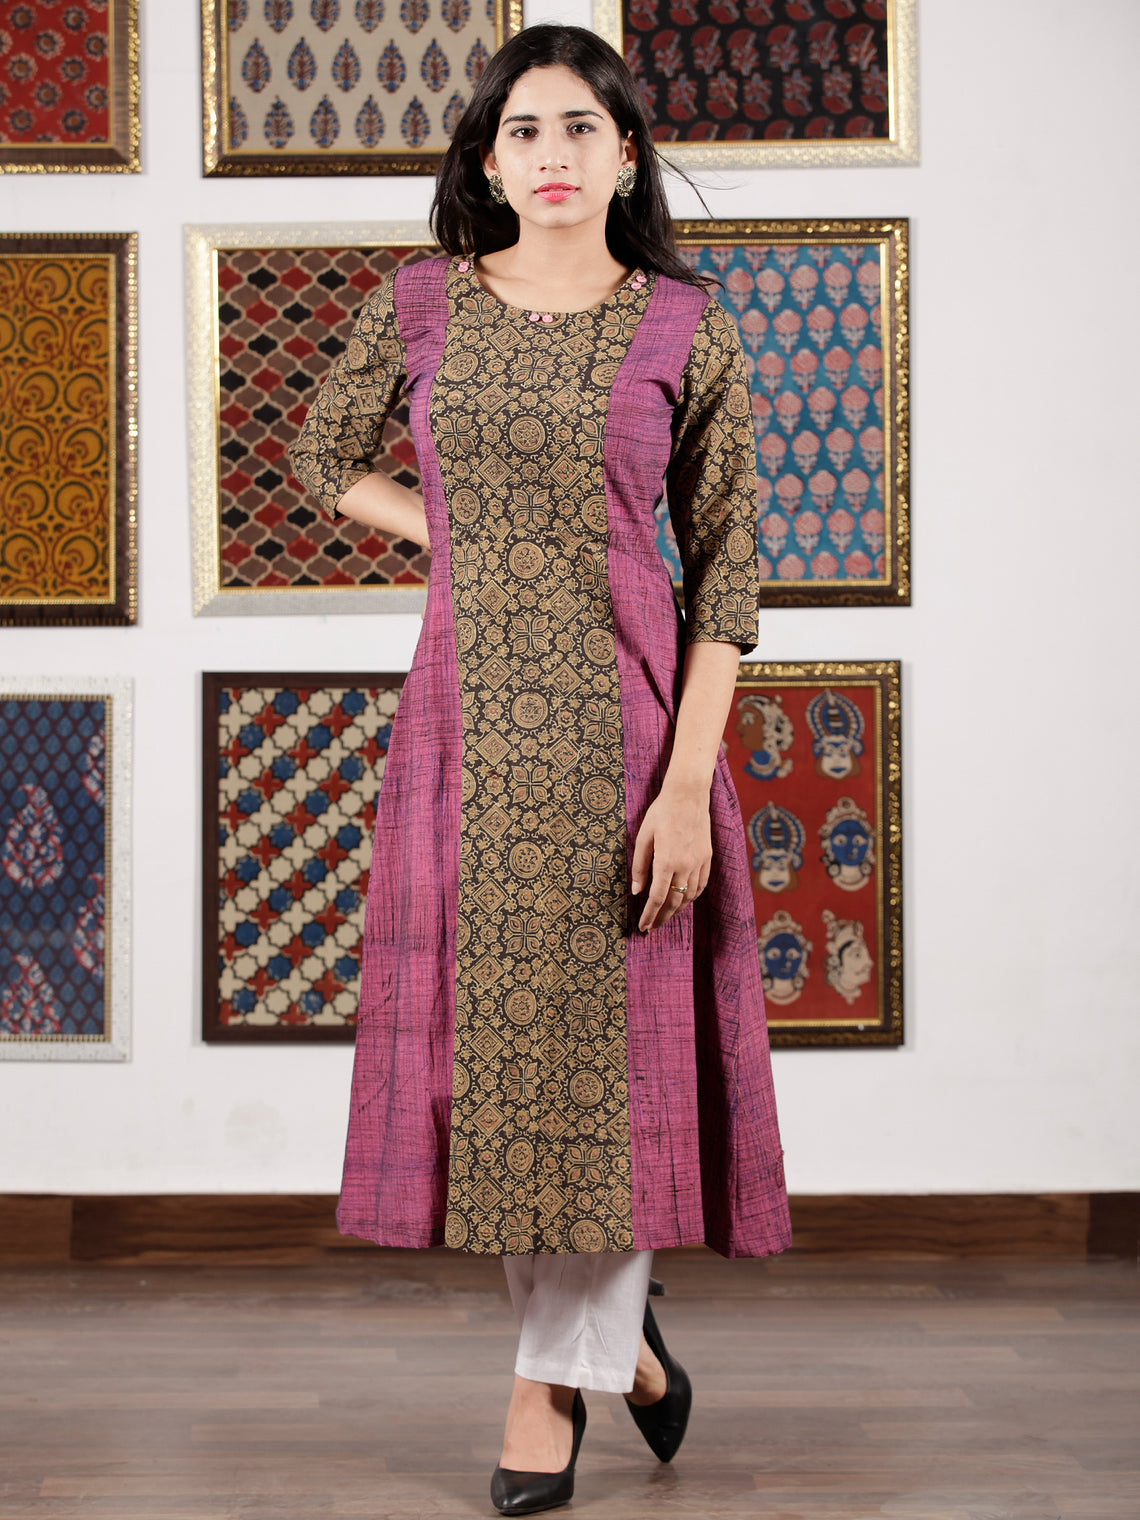 Purple Beige Black Ajrakh Hand Block Printed Kurta in Natural Colors - K112F1523